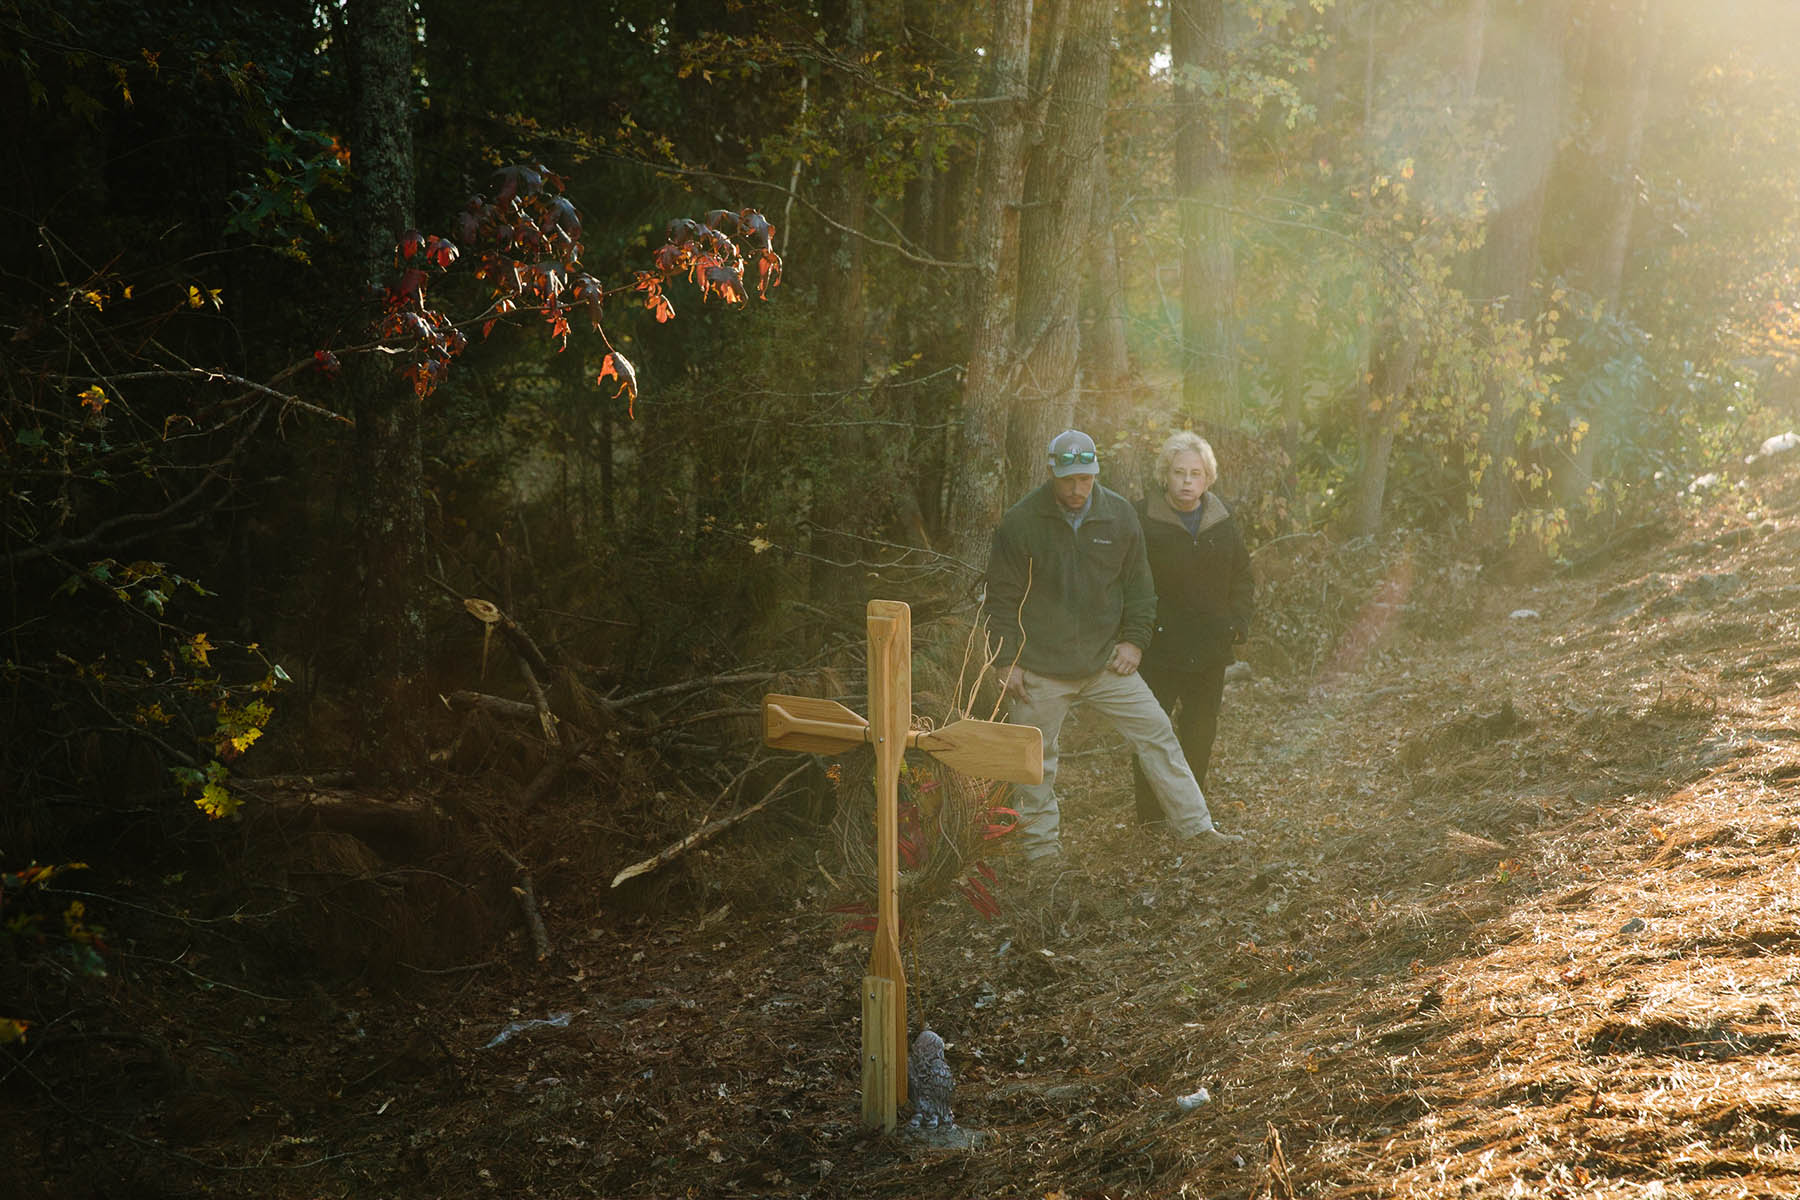 Josh and Linda Ward at the site of Matthew's accident (Edmund D. Fountain)